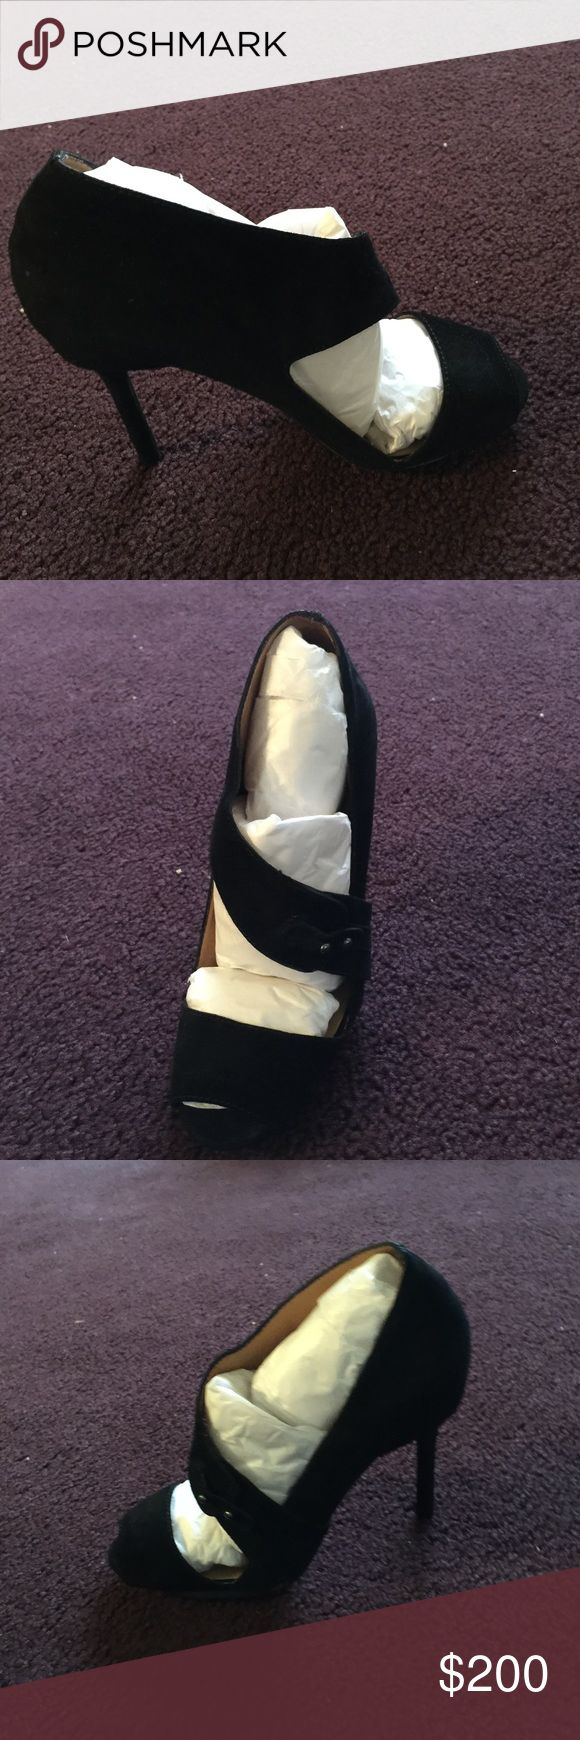 L.A.M.B Black suede lamb shoes, worn once, comes with dust bag, box and extra heel taps. Excellent condition. No scratches or stains selling b/c I'm not wearing heels 👠 that high anymore.  Also authentic L.A.M.B. Shoes Heels